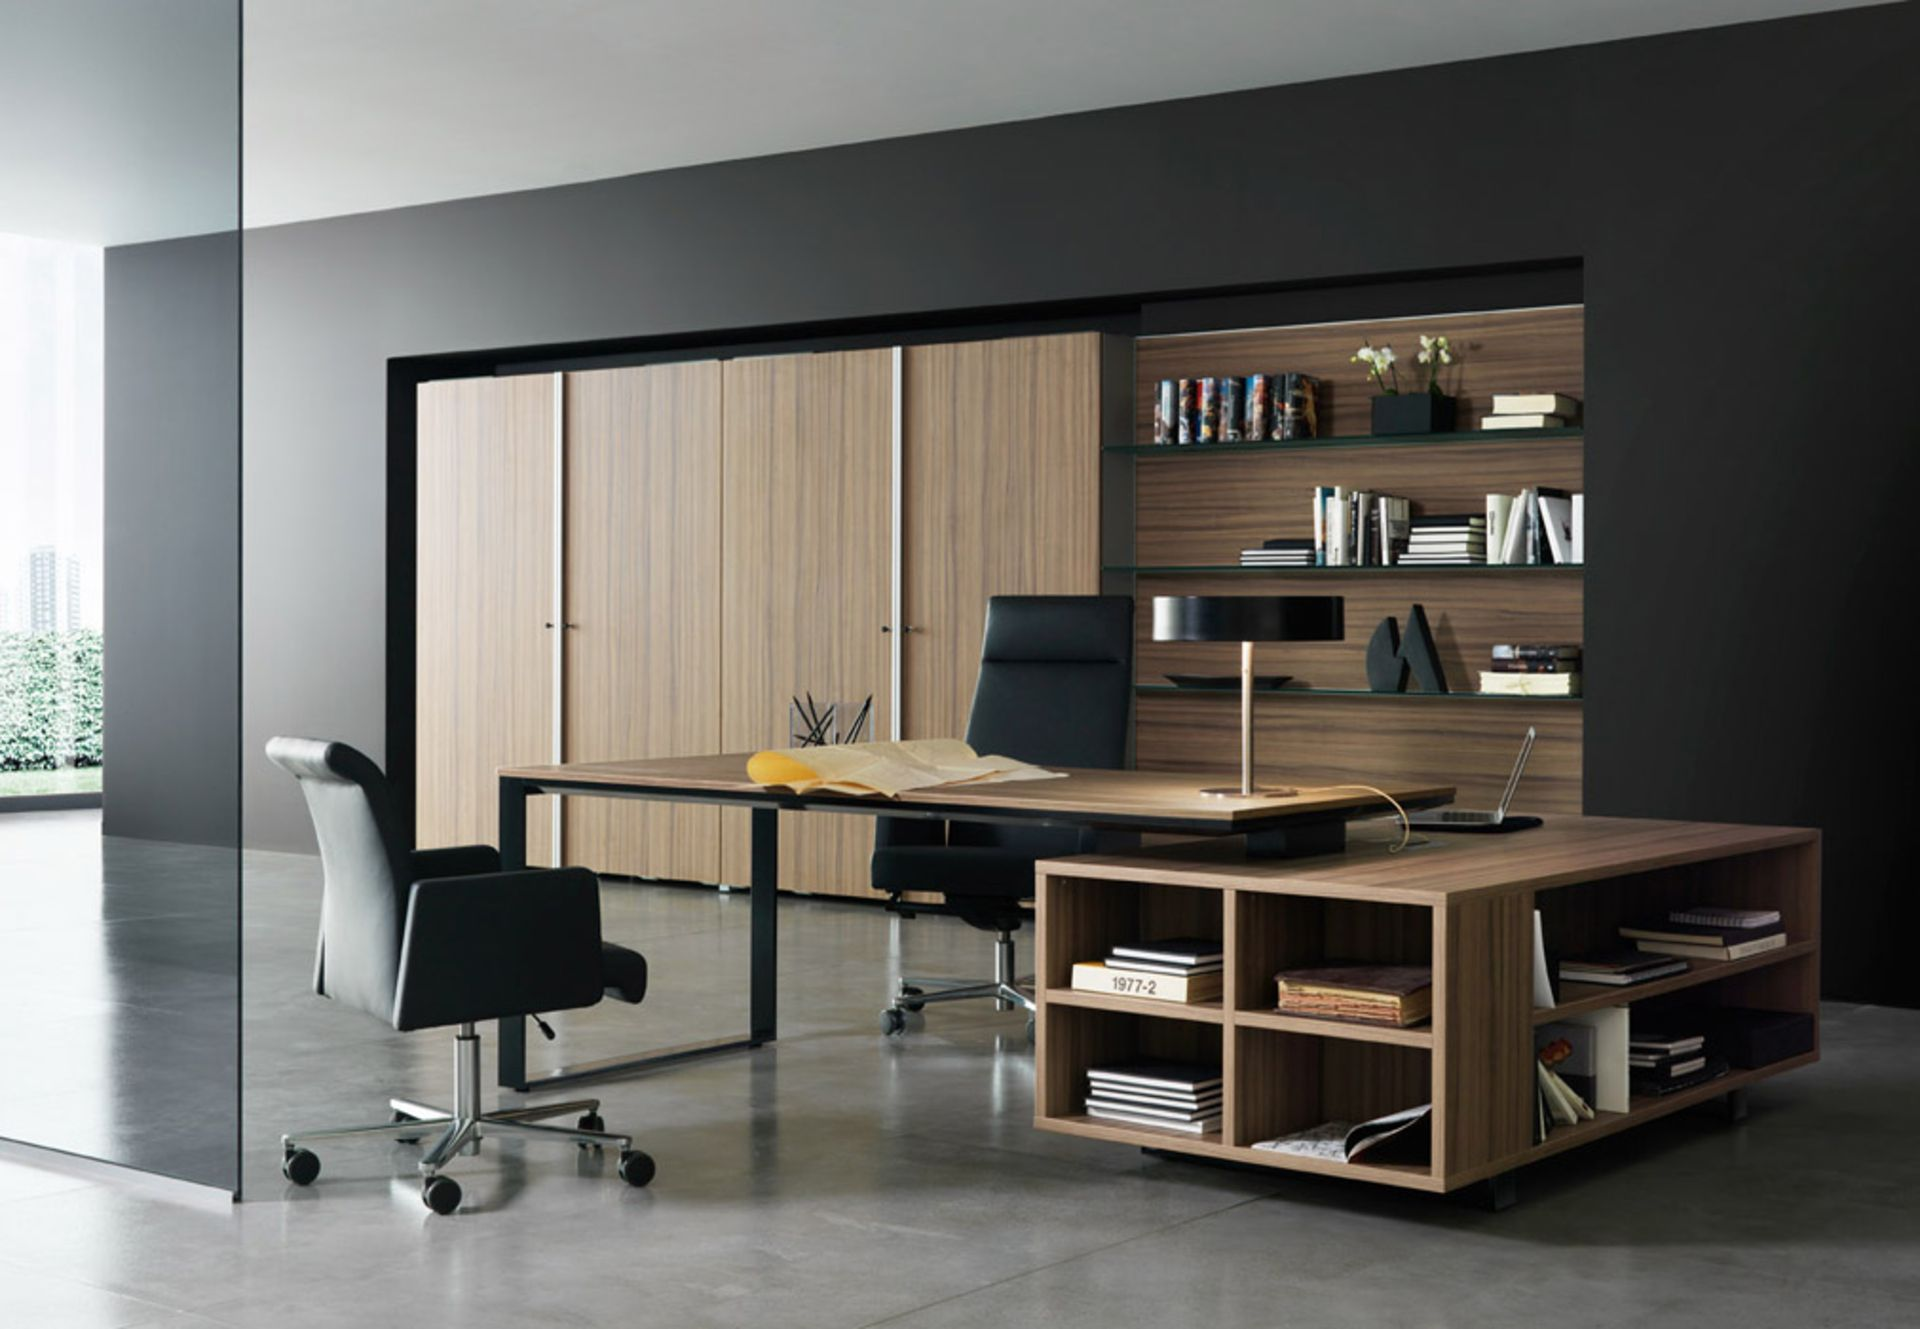 Modren Contemporary Office Design Ideas This Pin And More On Interior Decorating